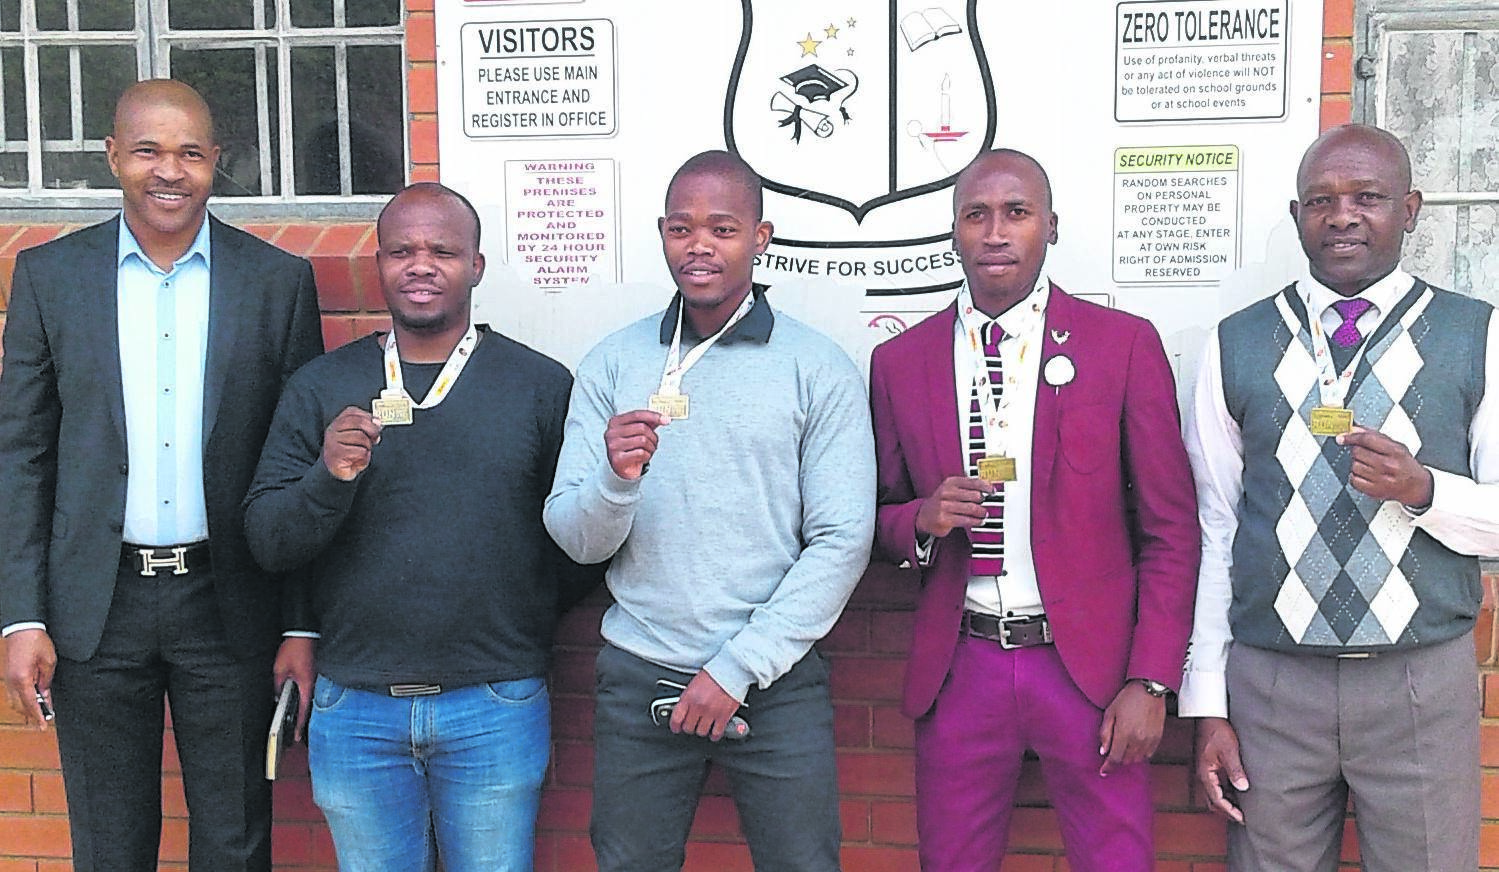 SGB chairperson J. Ngobese with race participants (from left) N.O. Dumakude, V.M. Zulu, S. Zulu, and Q.E. Khanyile. photo: supplied